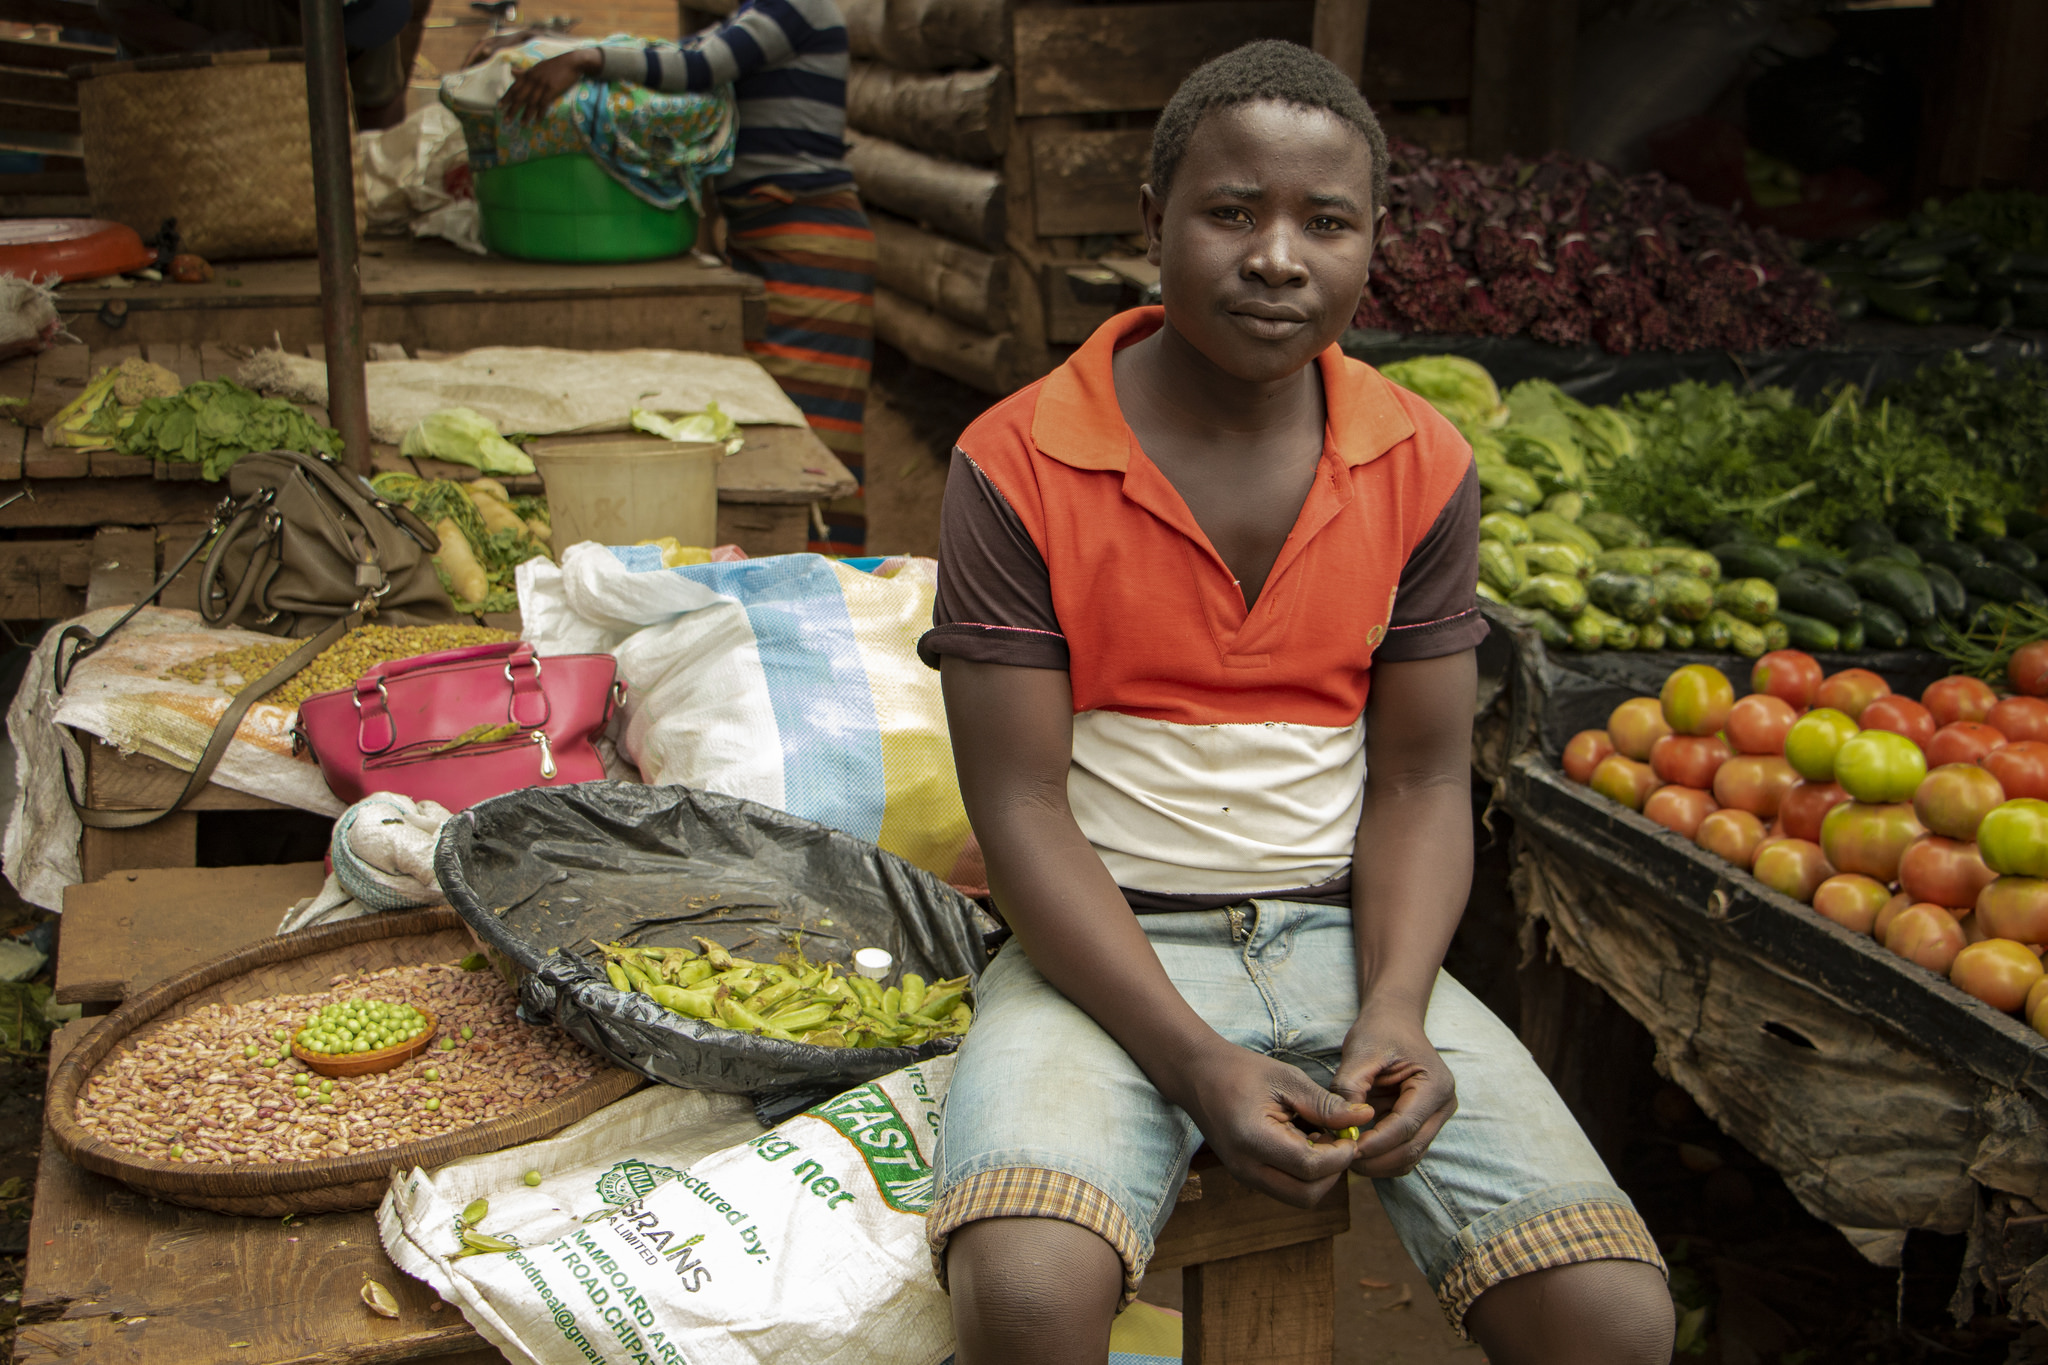 A vendor at a city market in Lilongwe, Malawi. The complexity of urbanizing food systems presents challenges for policy makers working to alleviate hunger and malnutrition, but can be broken down into manageable elements. Photo by Melissa Cooperman/IFPRI